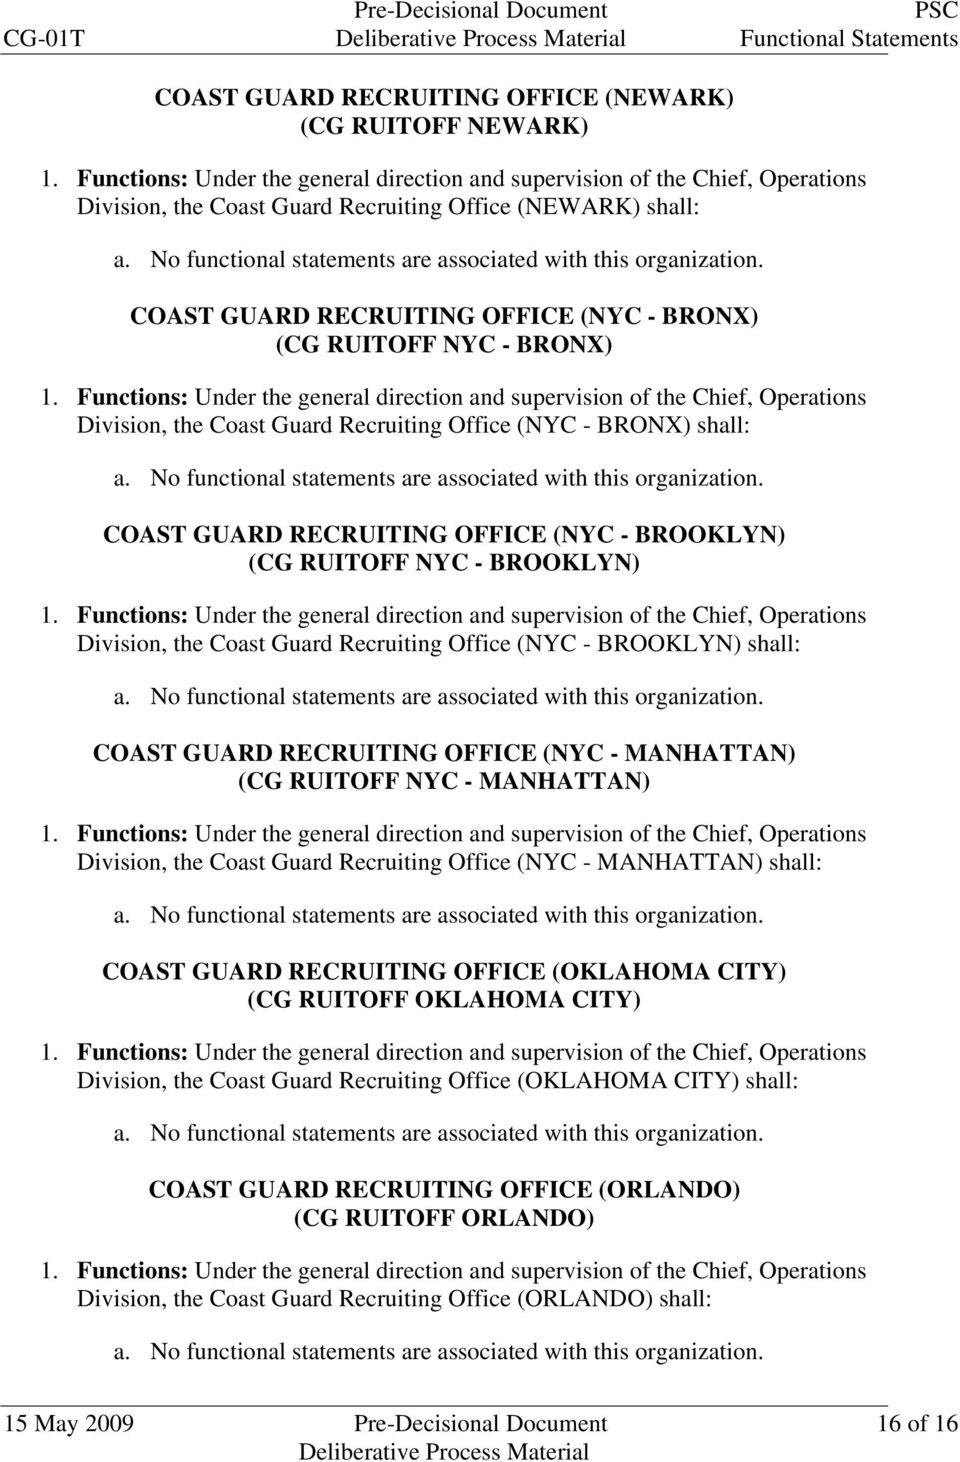 Office (NYC - BROOKLYN) shall: COAST GUARD RECRUITING OFFICE (NYC - MANHATTAN) (CG RUITOFF NYC - MANHATTAN) Division, the Coast Guard Recruiting Office (NYC - MANHATTAN) shall: COAST GUARD RECRUITING